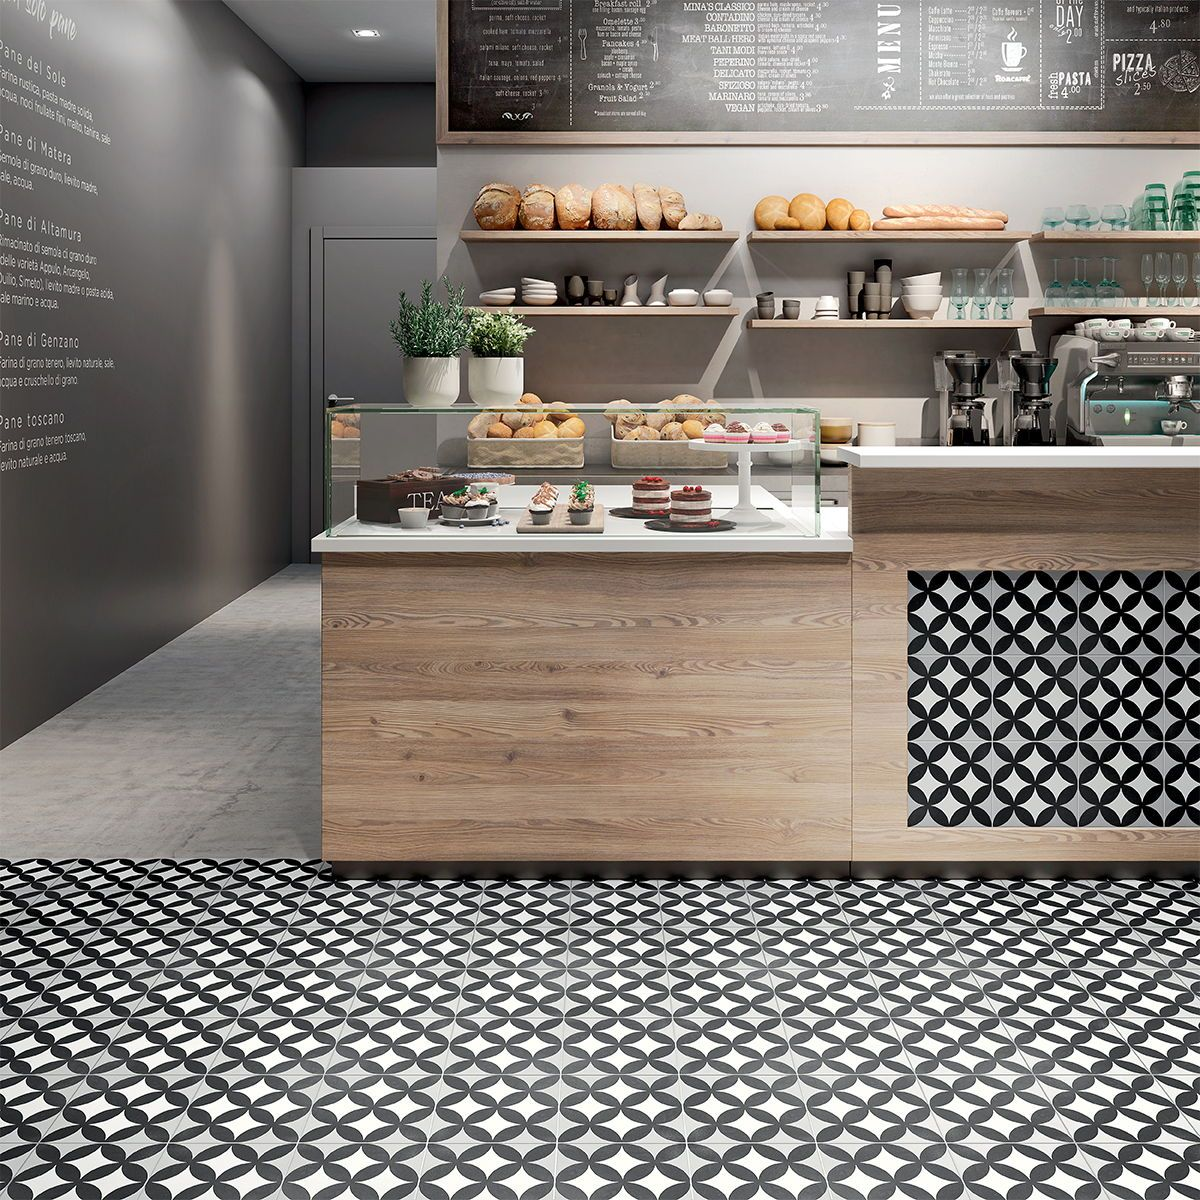 Cancos tile & stone Cement Collection porcelain tiles can be used for both floor and wall